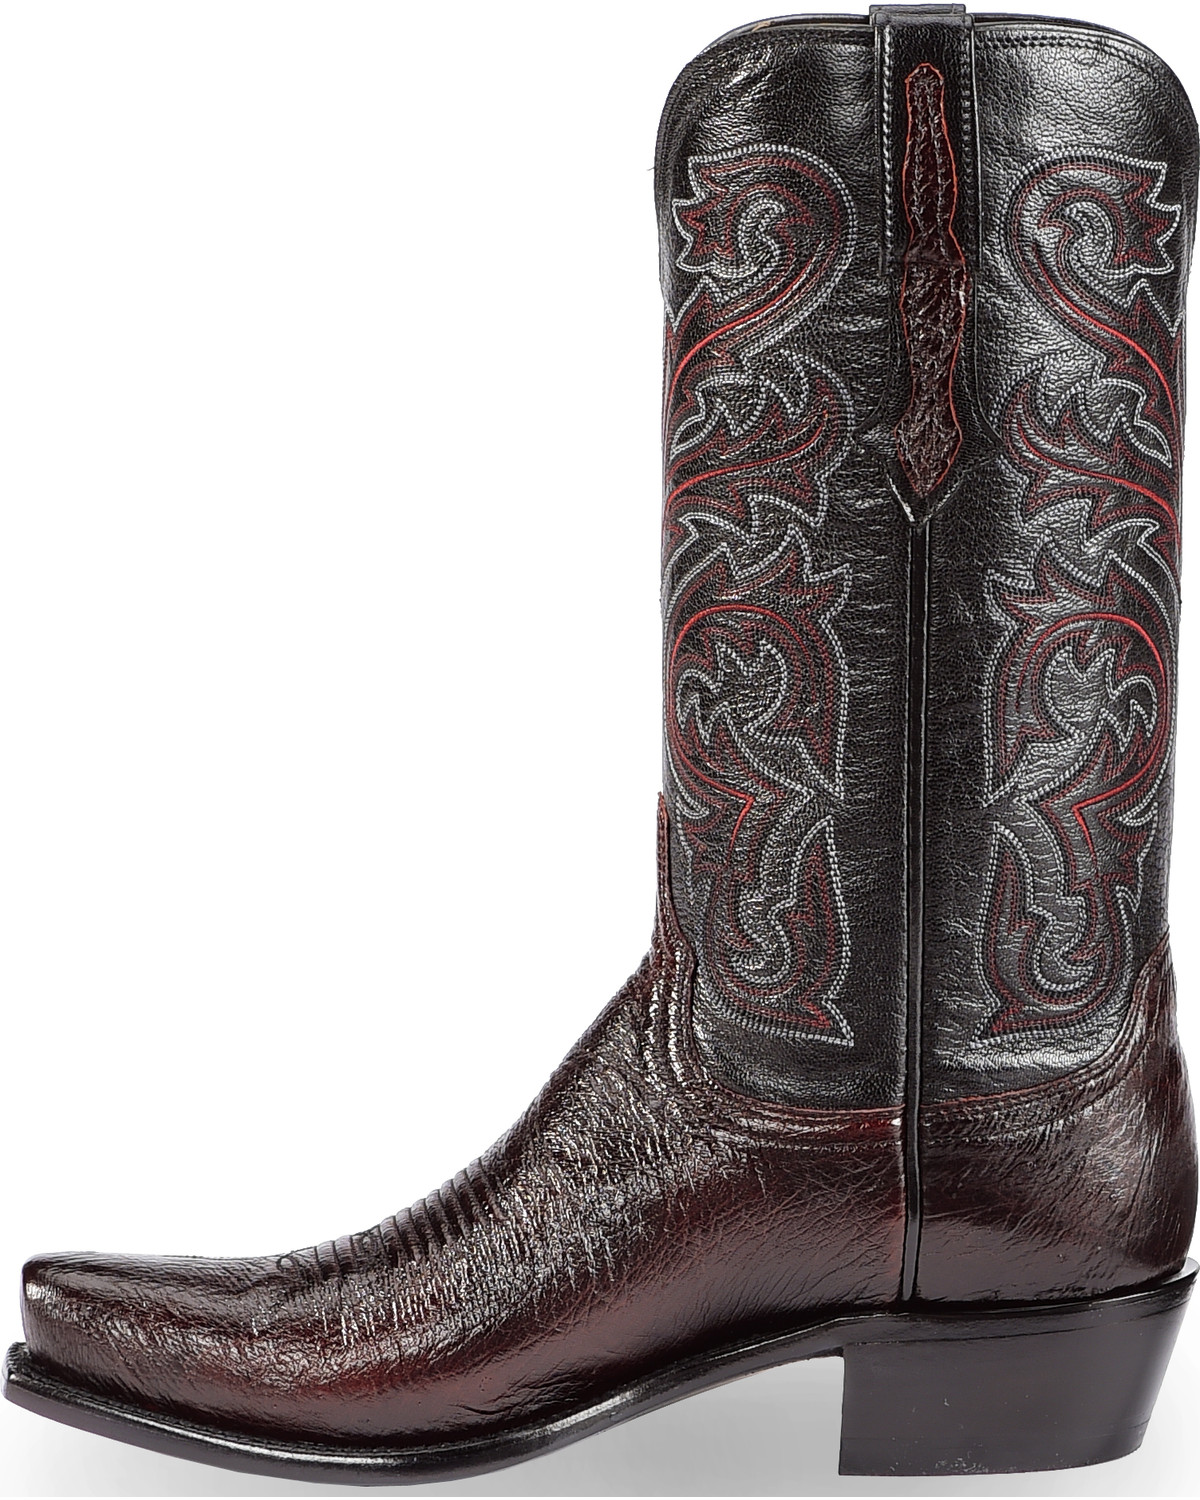 de7d89fc861ac Lucchese Men s Handmade Black Cherry Nathan Smooth Ostrich Western Boots -  Snip Toe